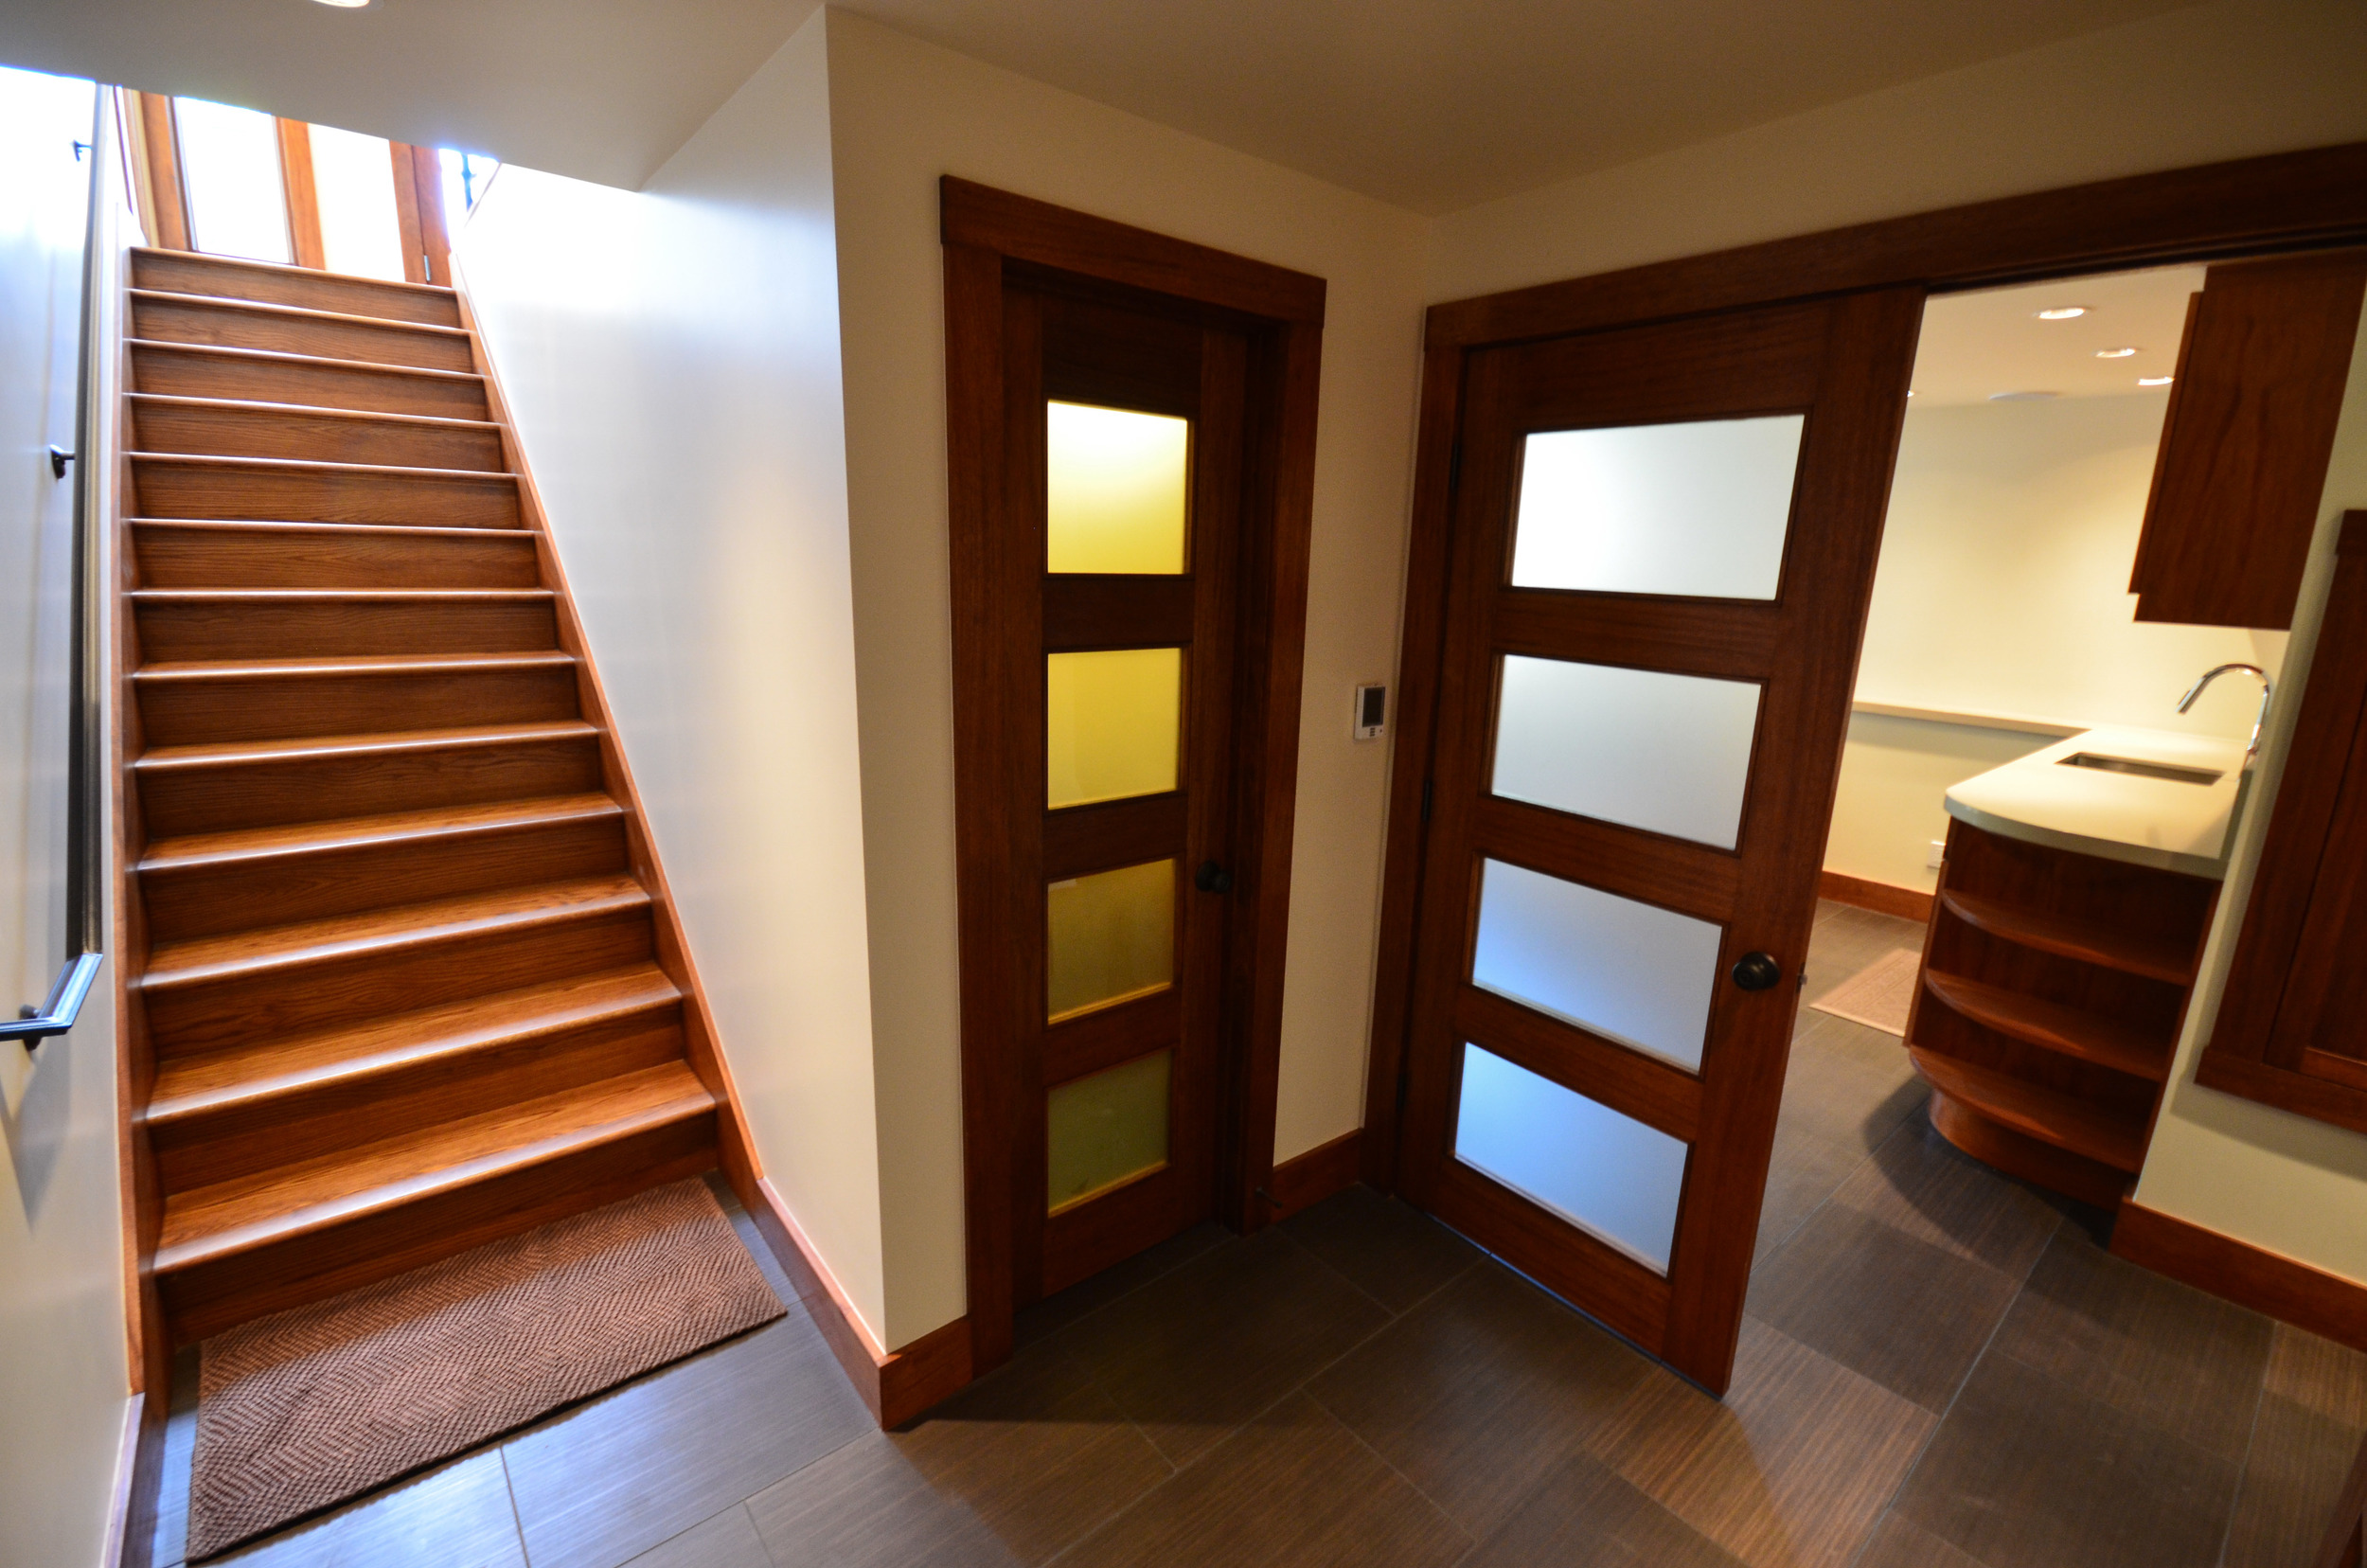 237 irving st. stairs.jpg